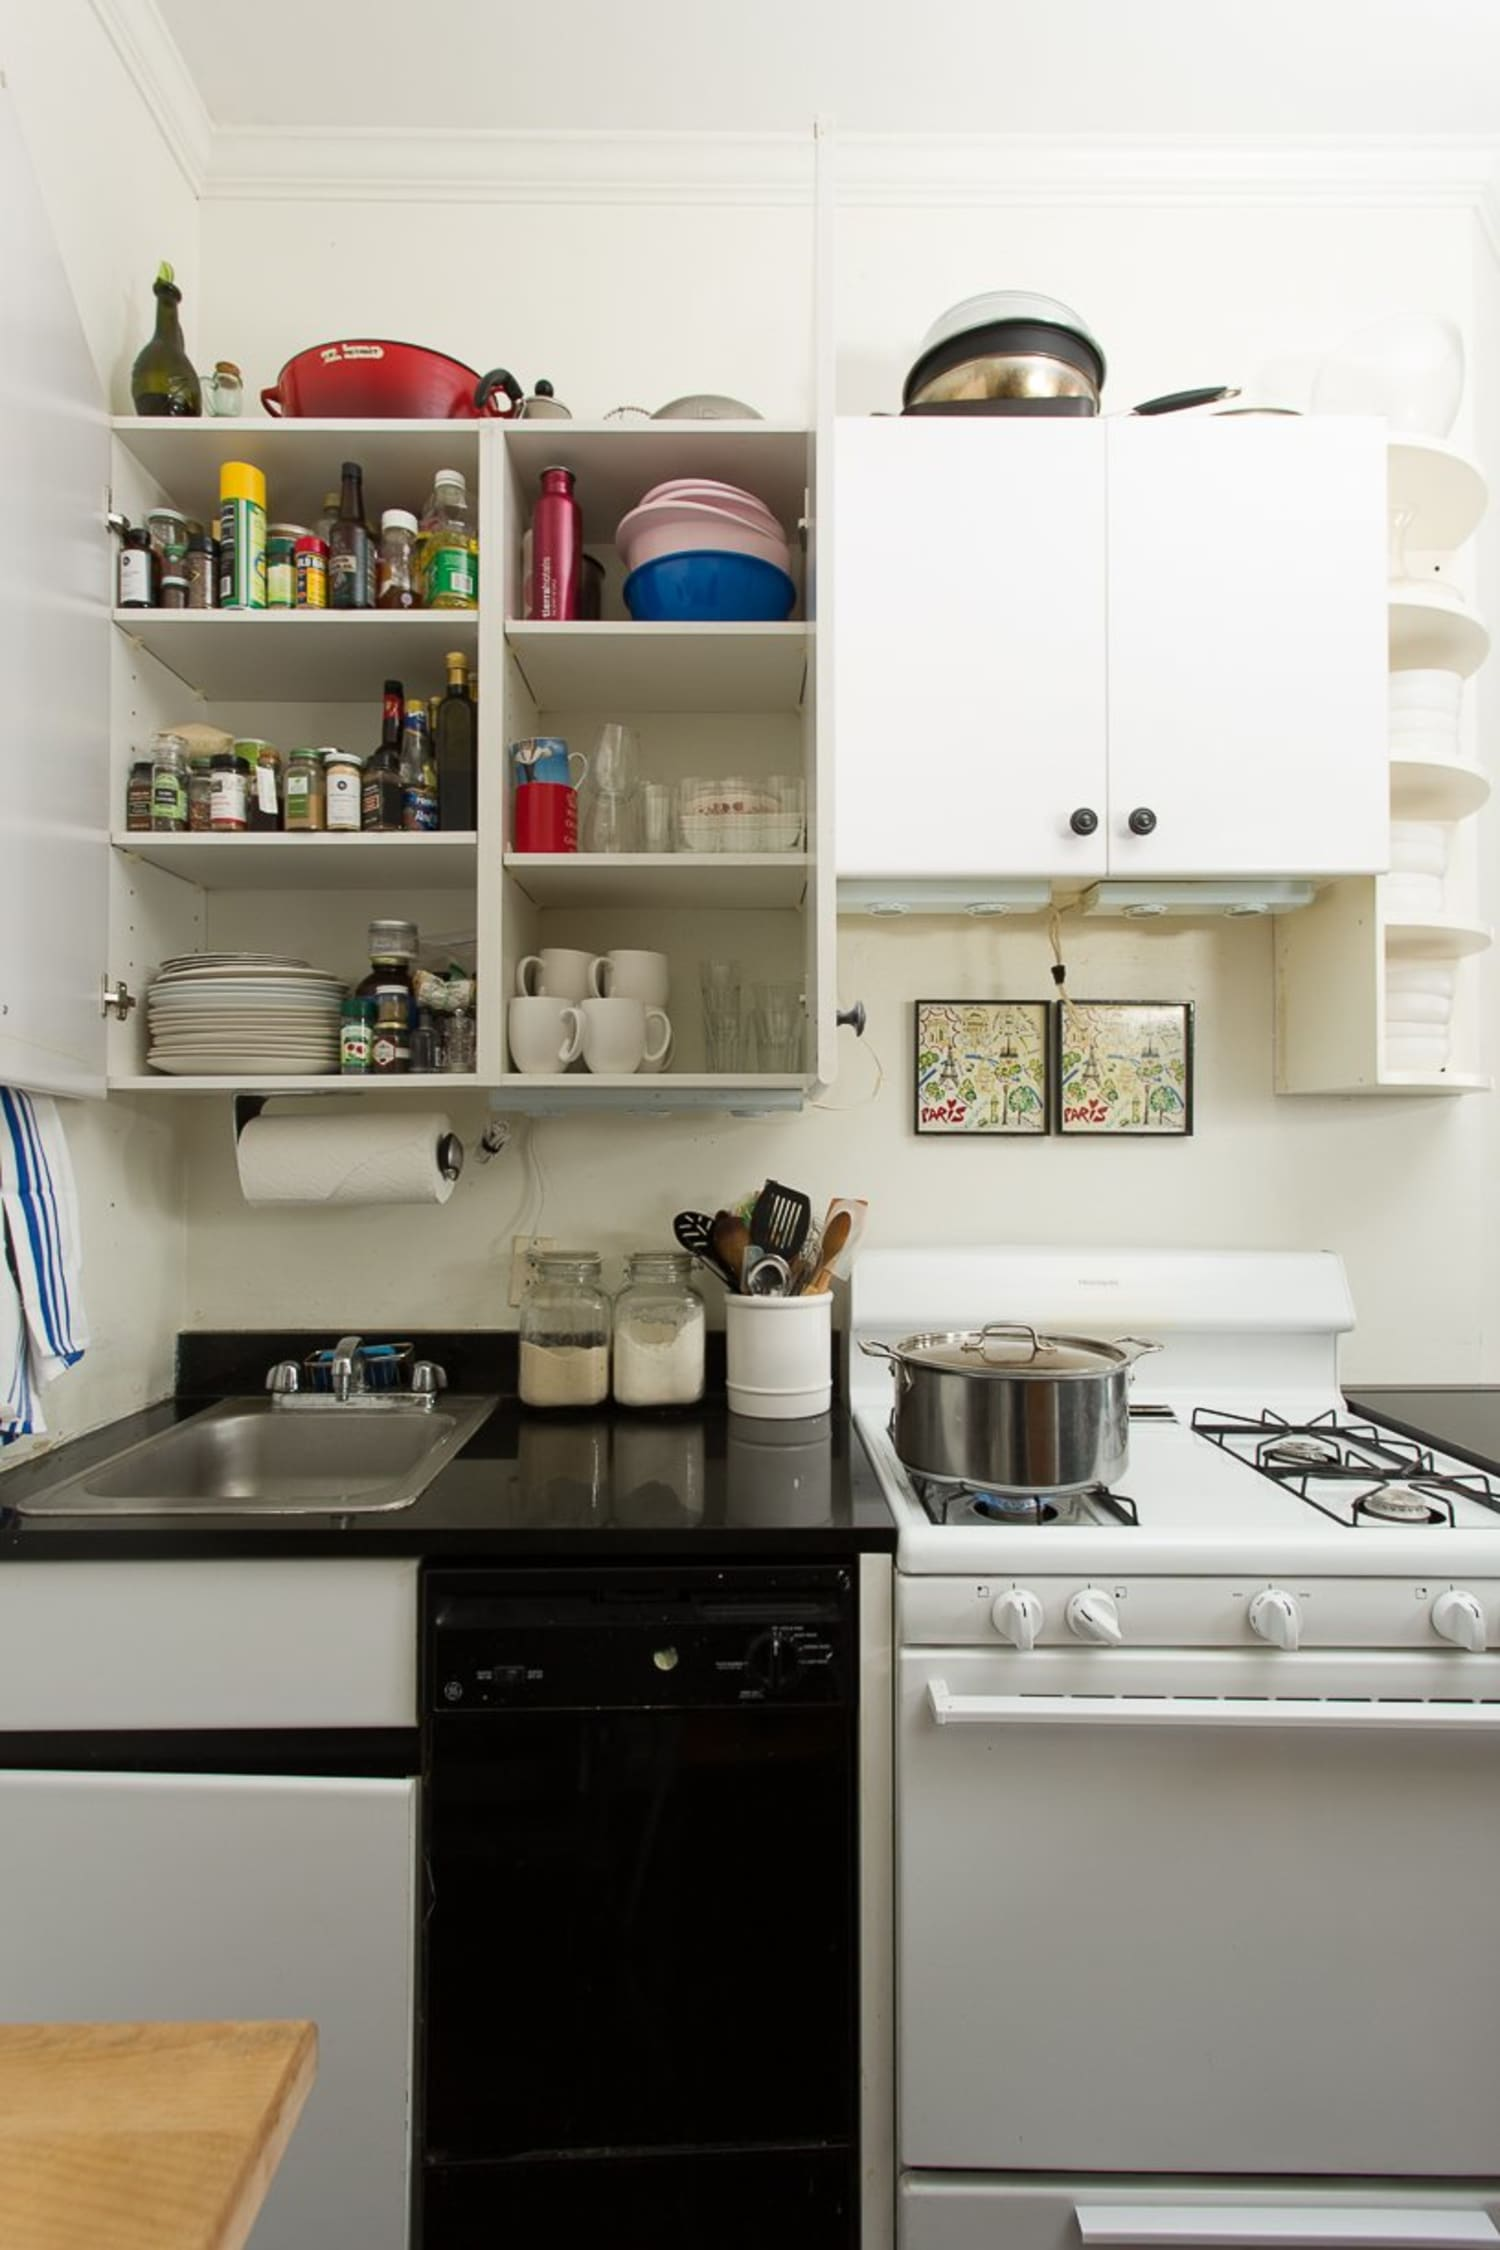 8 Smart Ways To Make More Space In A Small Kitchen